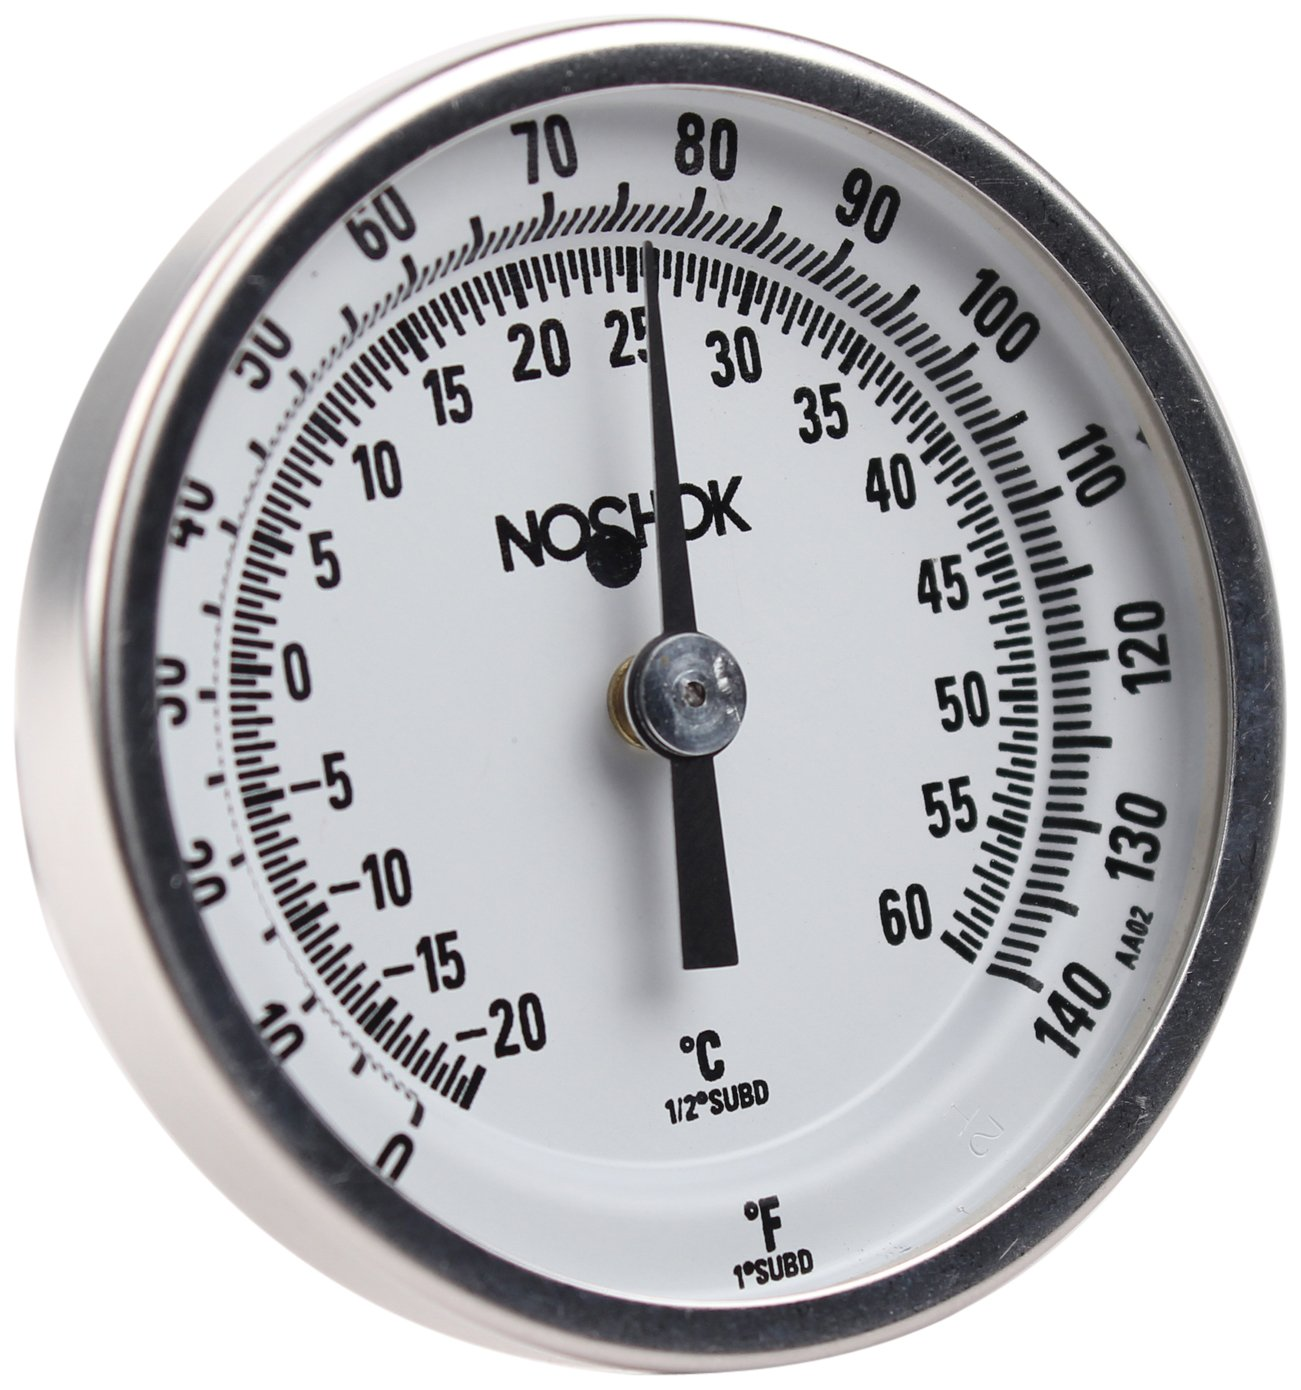 NOSHOK 100 Series 304 Stainless Steel Dual Scale Bi Metal Thermometer with Back Mount, 2-1/2'' Stem, 1/4'' NPT Connection, 2'' Dial, 0-140 F Temperature Range